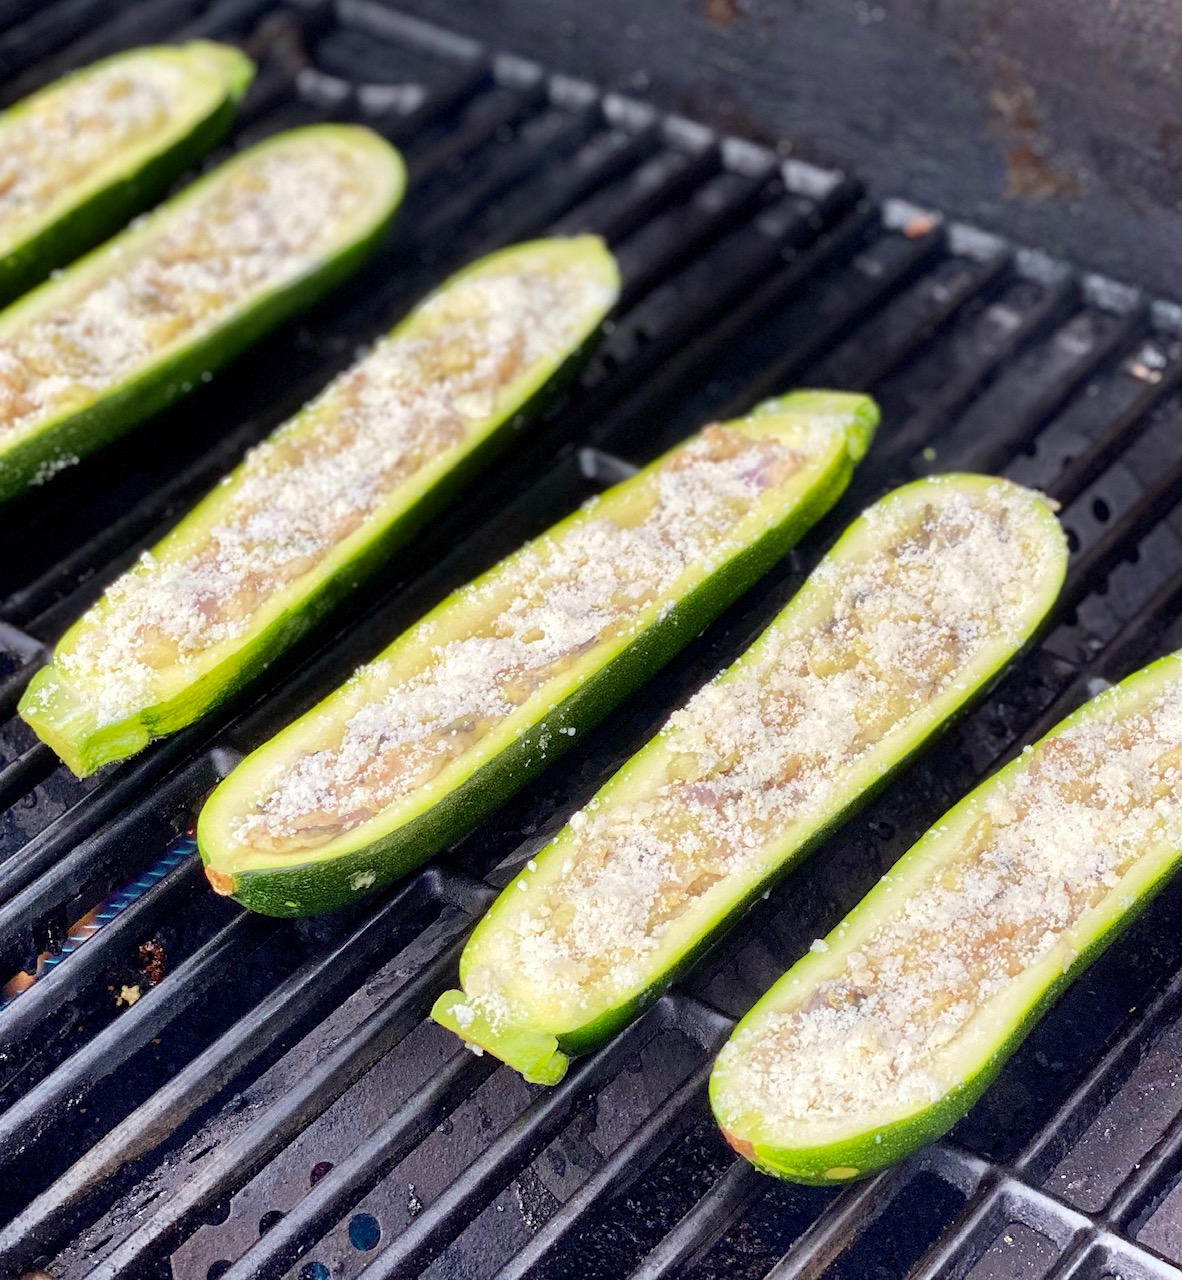 Zucchini boats placed on a grill rack over medium heat. #zucchini #grilledzucchini #grilledvegetables #grilledsidedish #summersidedish #summercookout #grillideas #grillrecipes